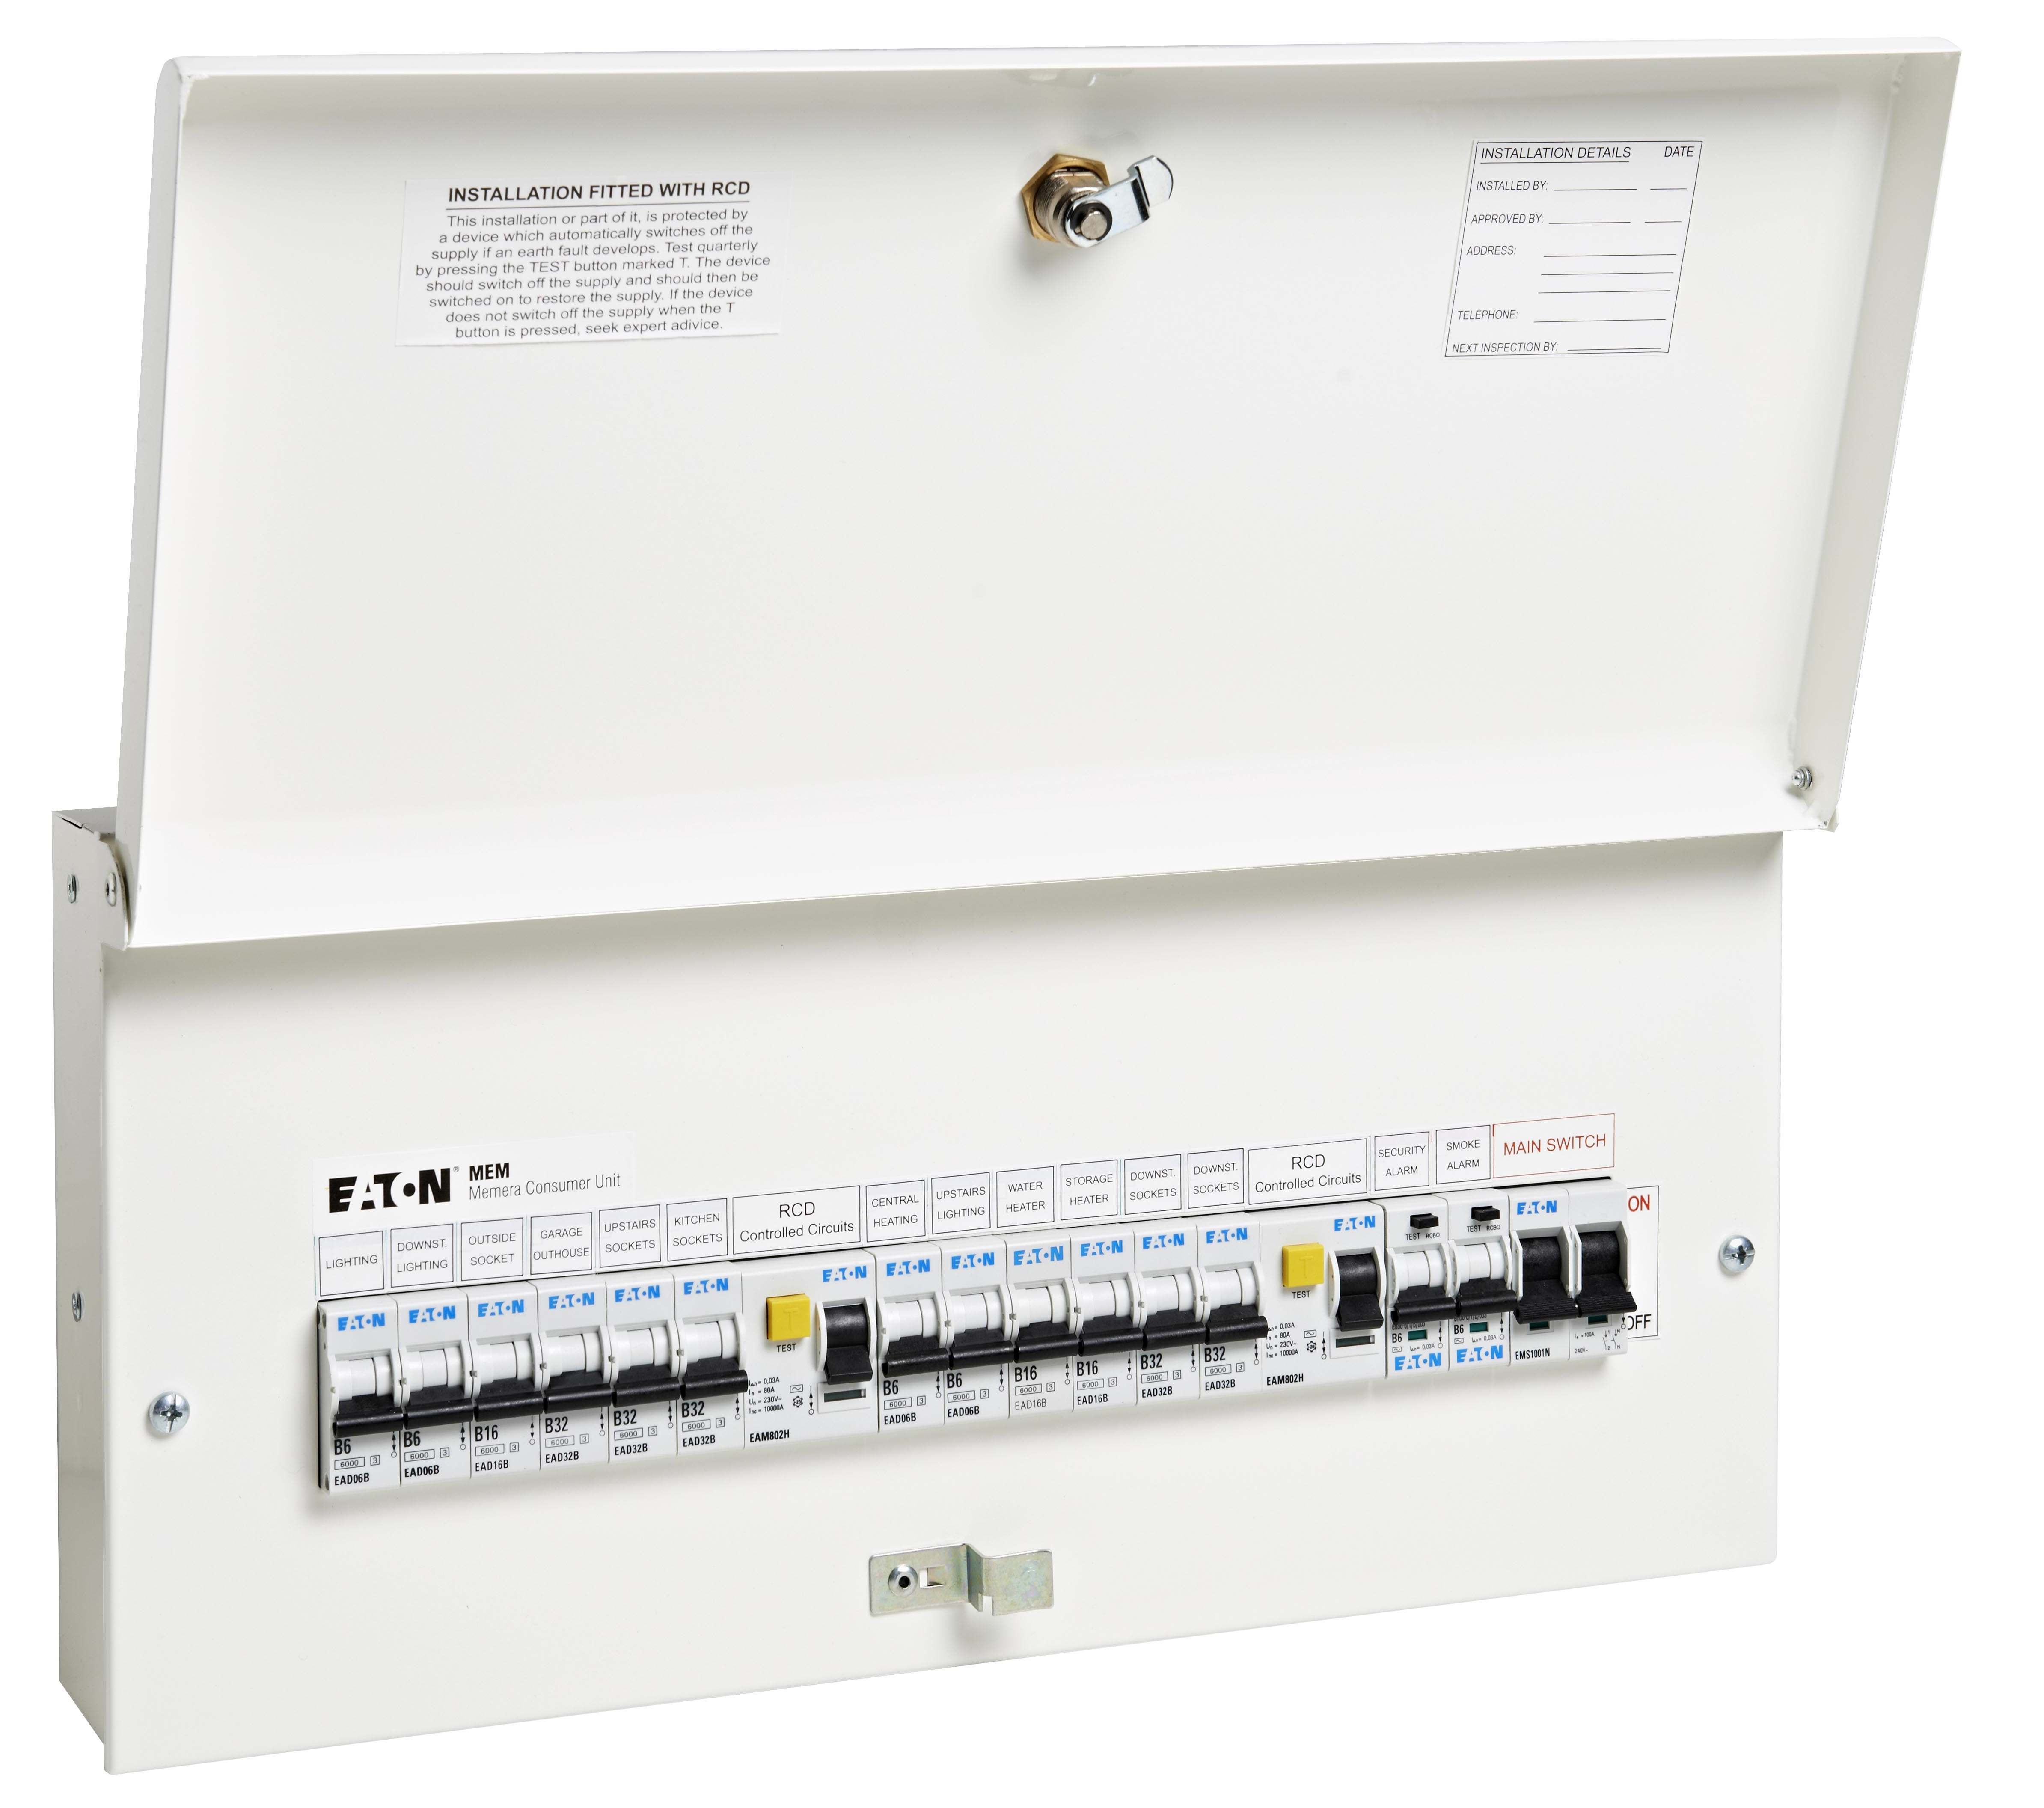 Tech Domestic Wiring Regulations Guide And Troubleshooting Of Uk Fuse Box 23 Diagram Images Home House Examples